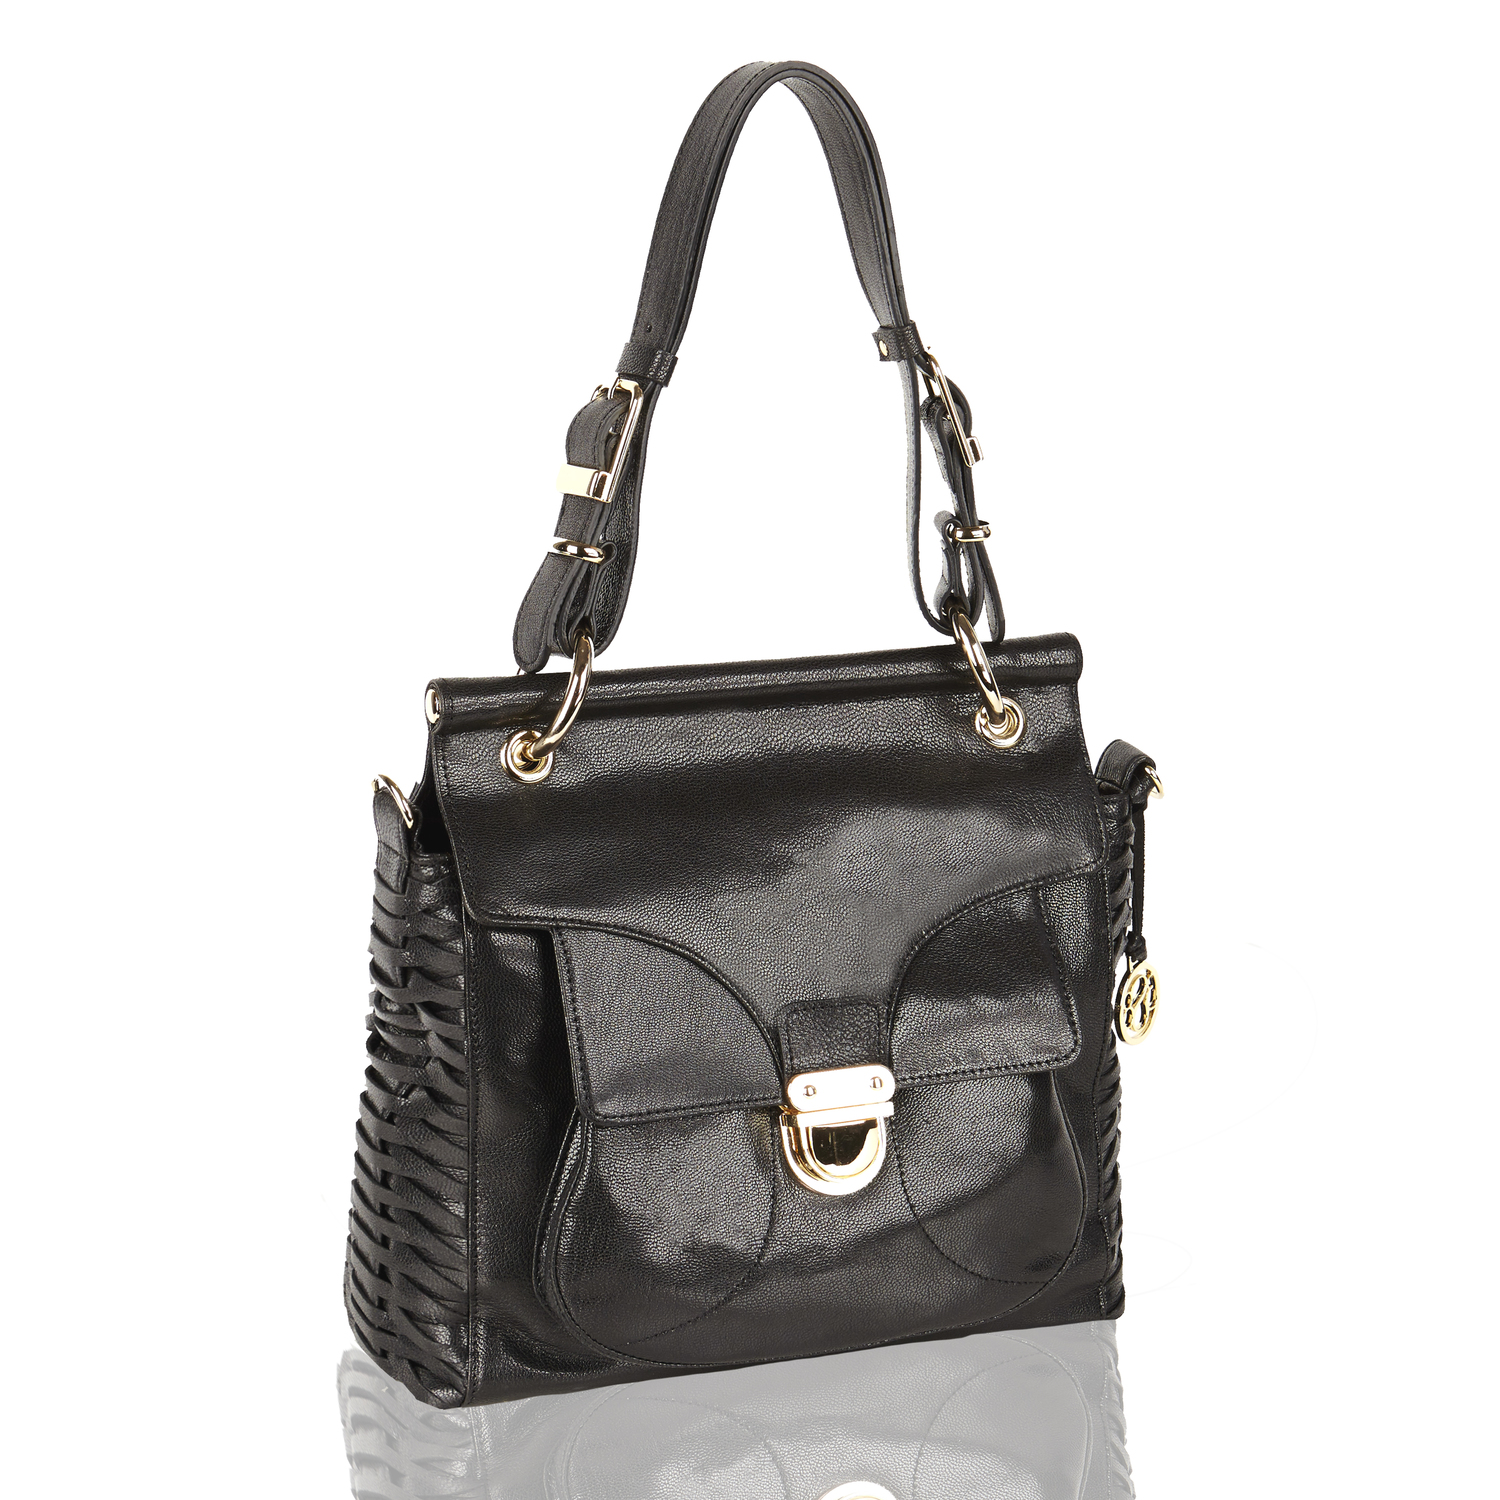 SOFTENED BLACK - $575.00